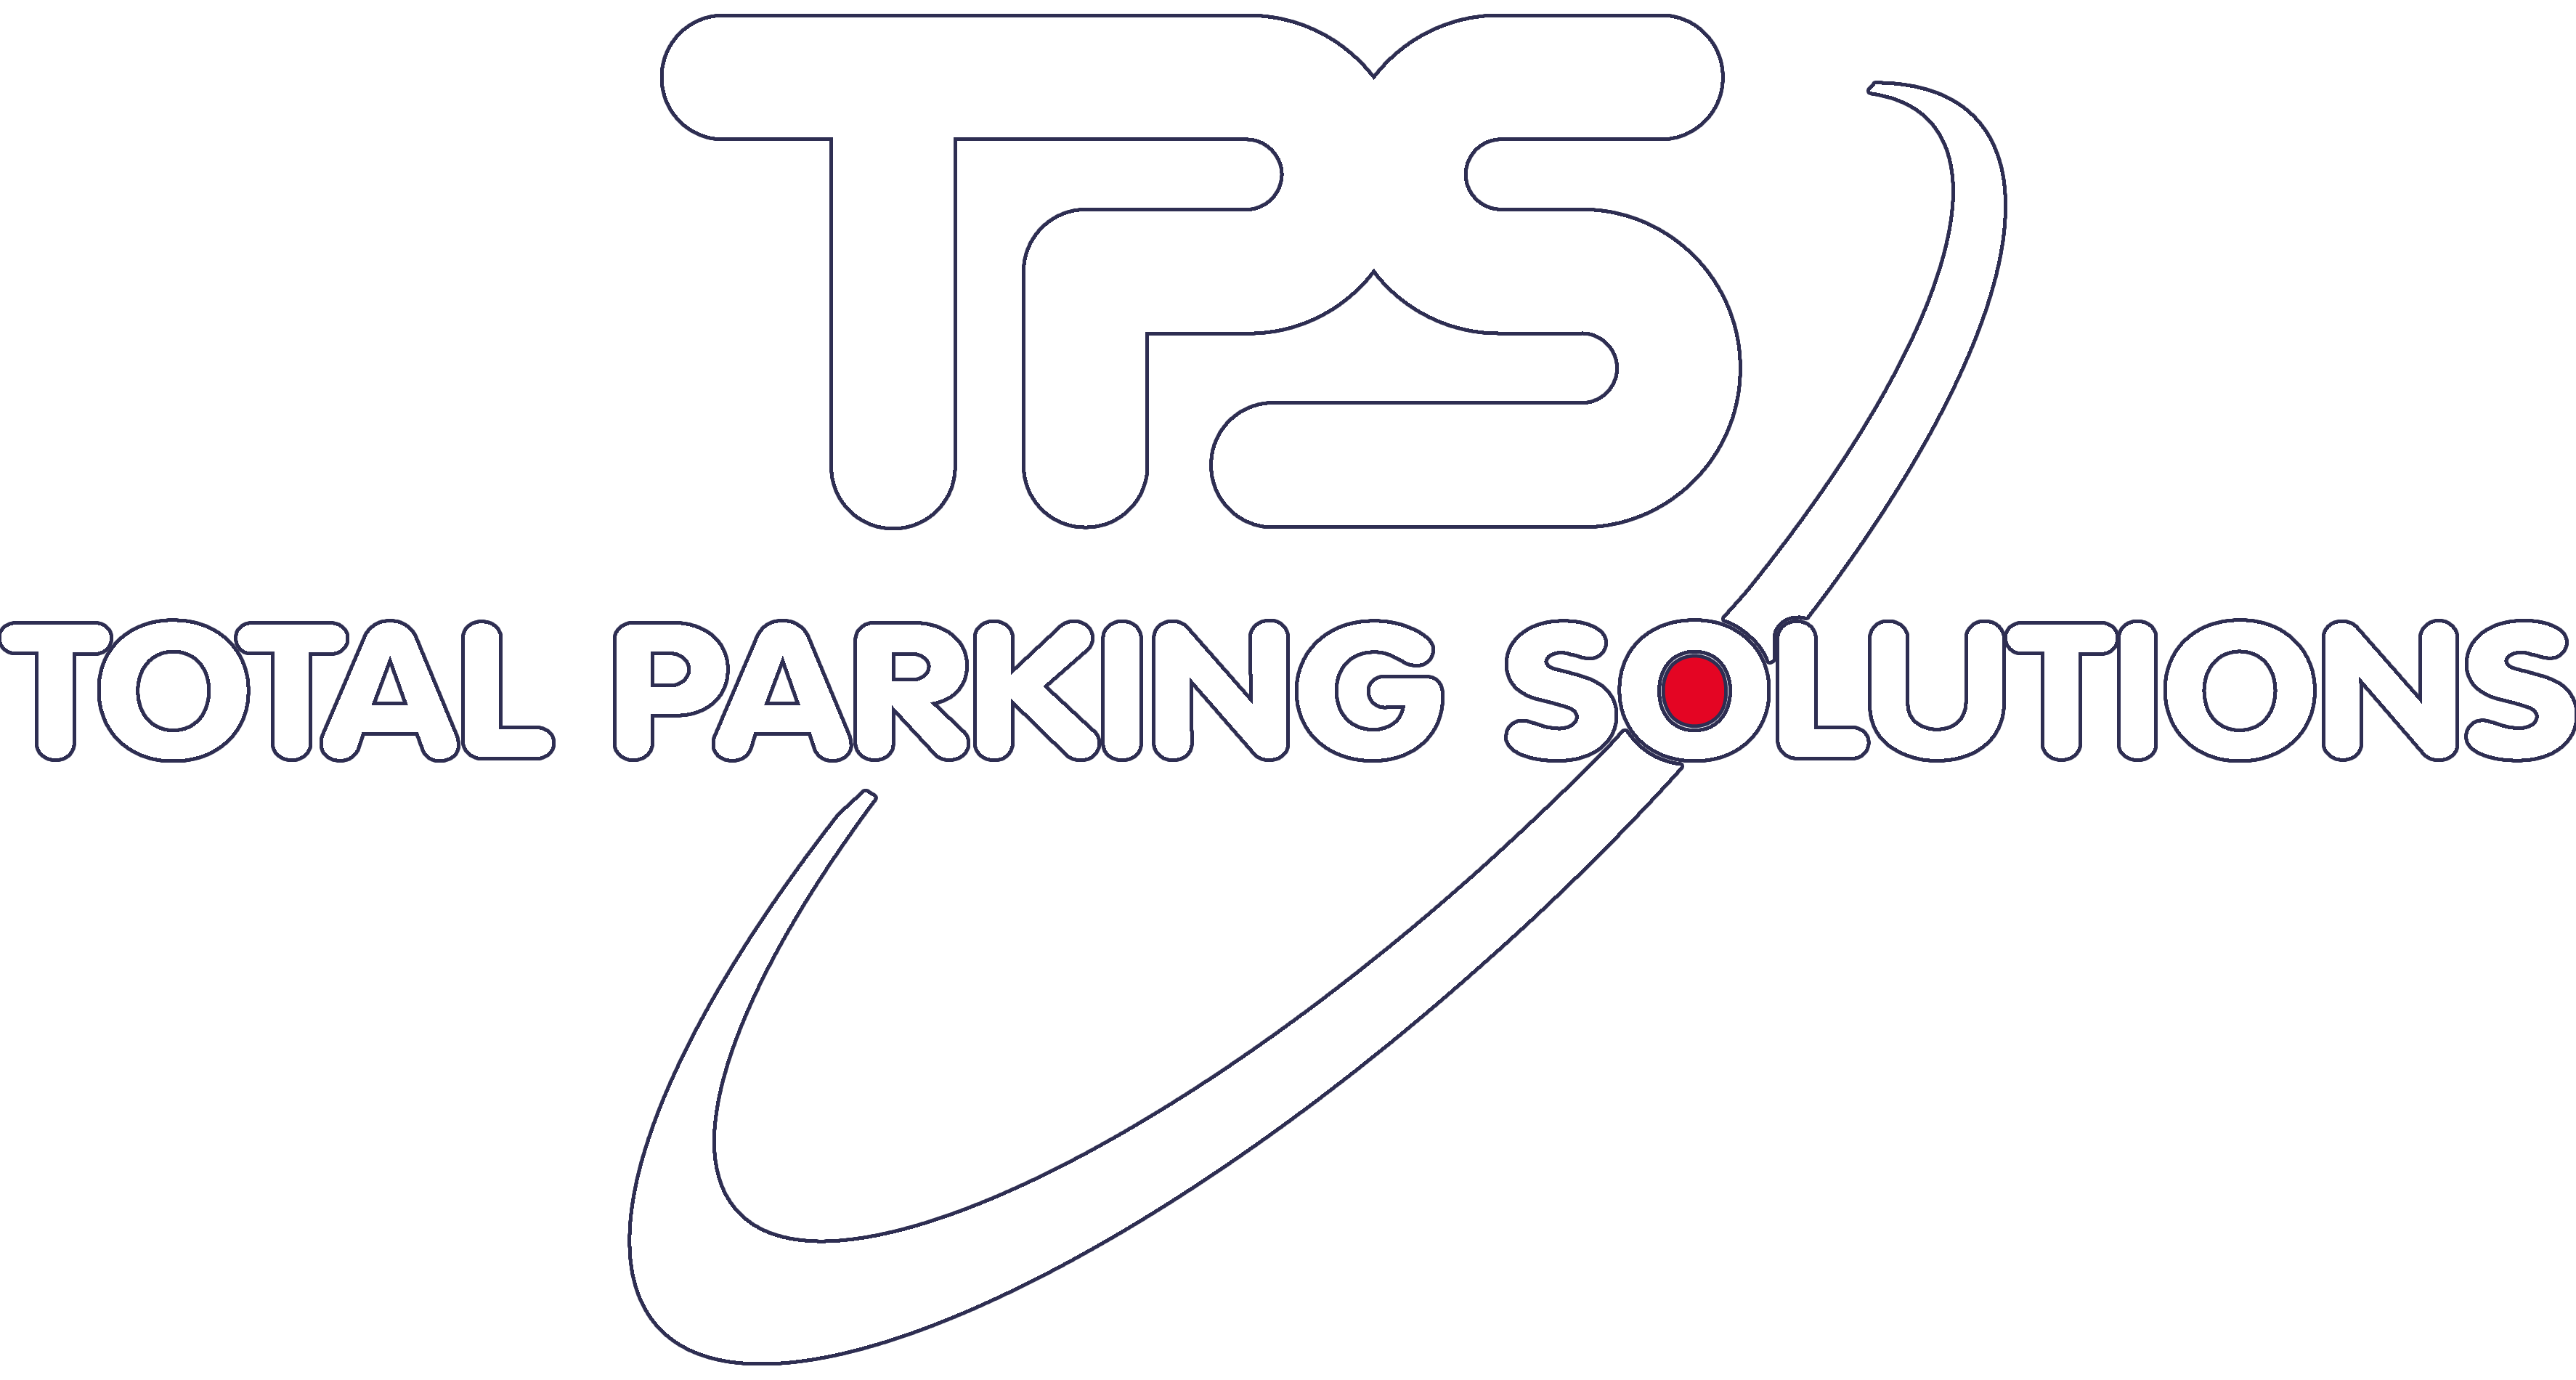 Total Parking Solutions